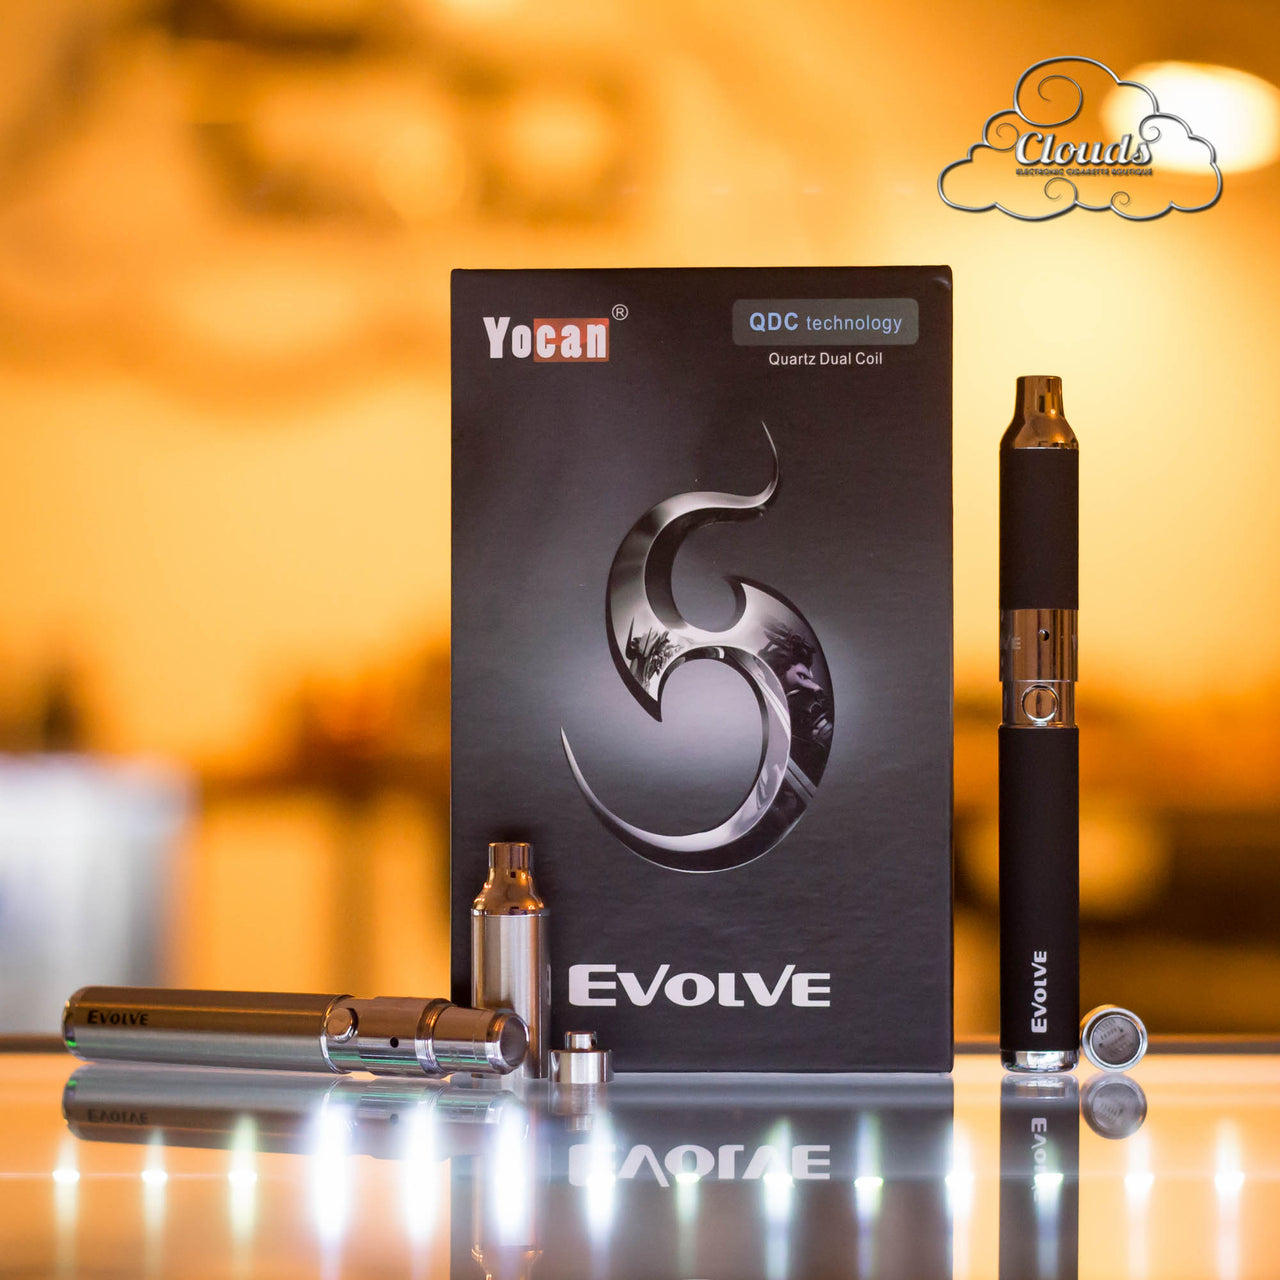 Yocan Evolve Oil Pen